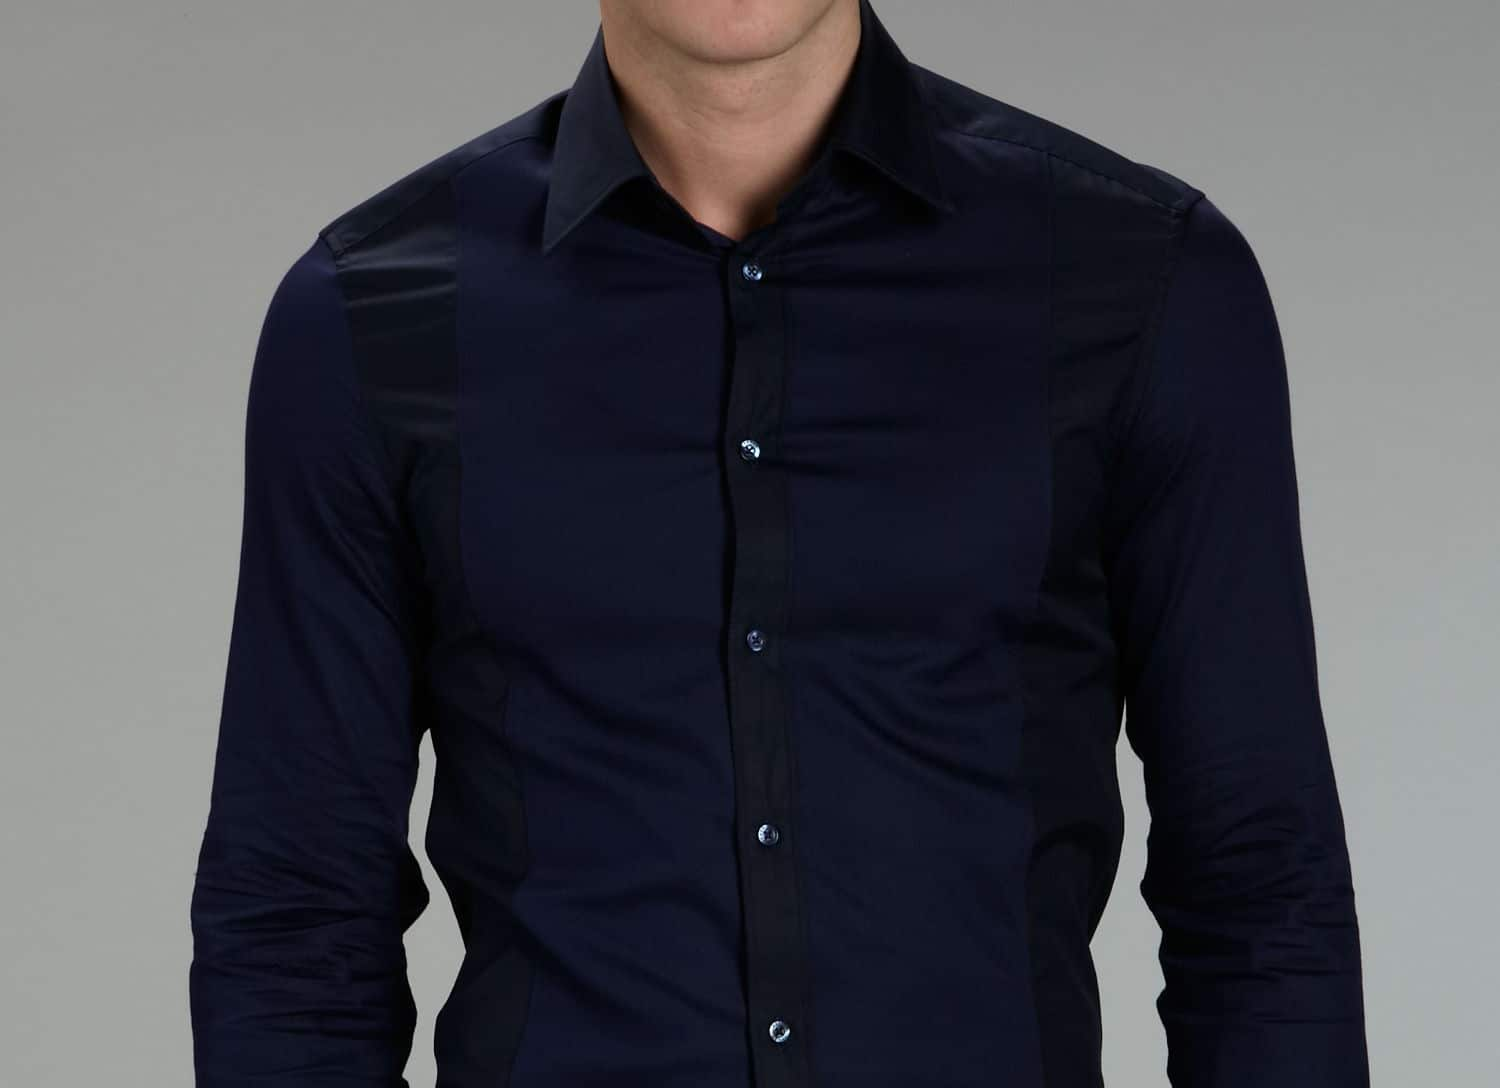 Dress Shirt – cocktail attire for men